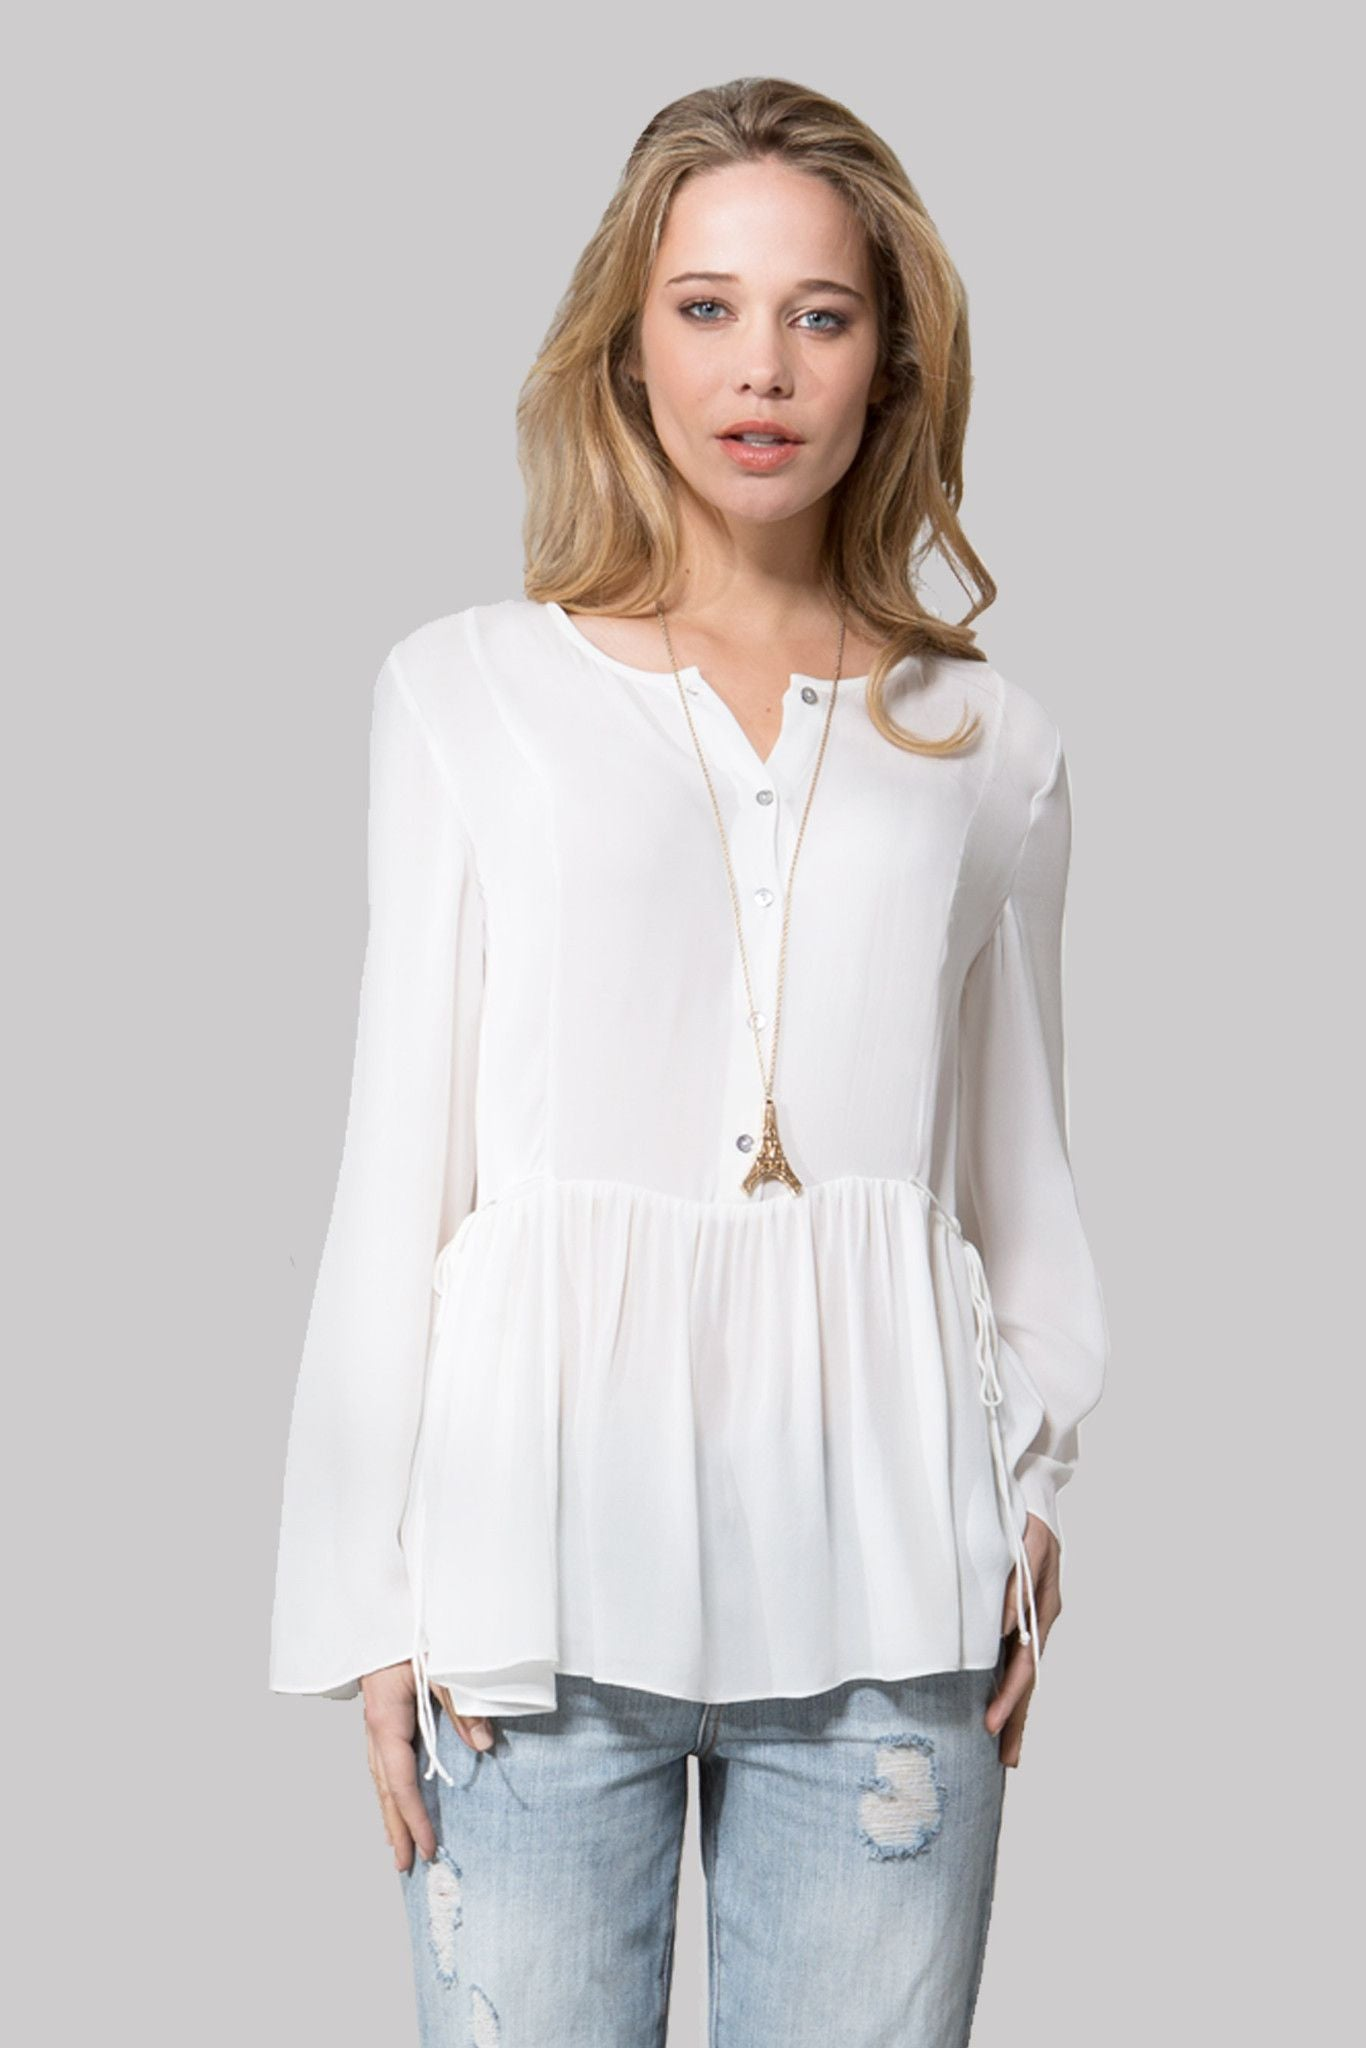 T113 SOLID DBL GGT BLOUSE IVORY